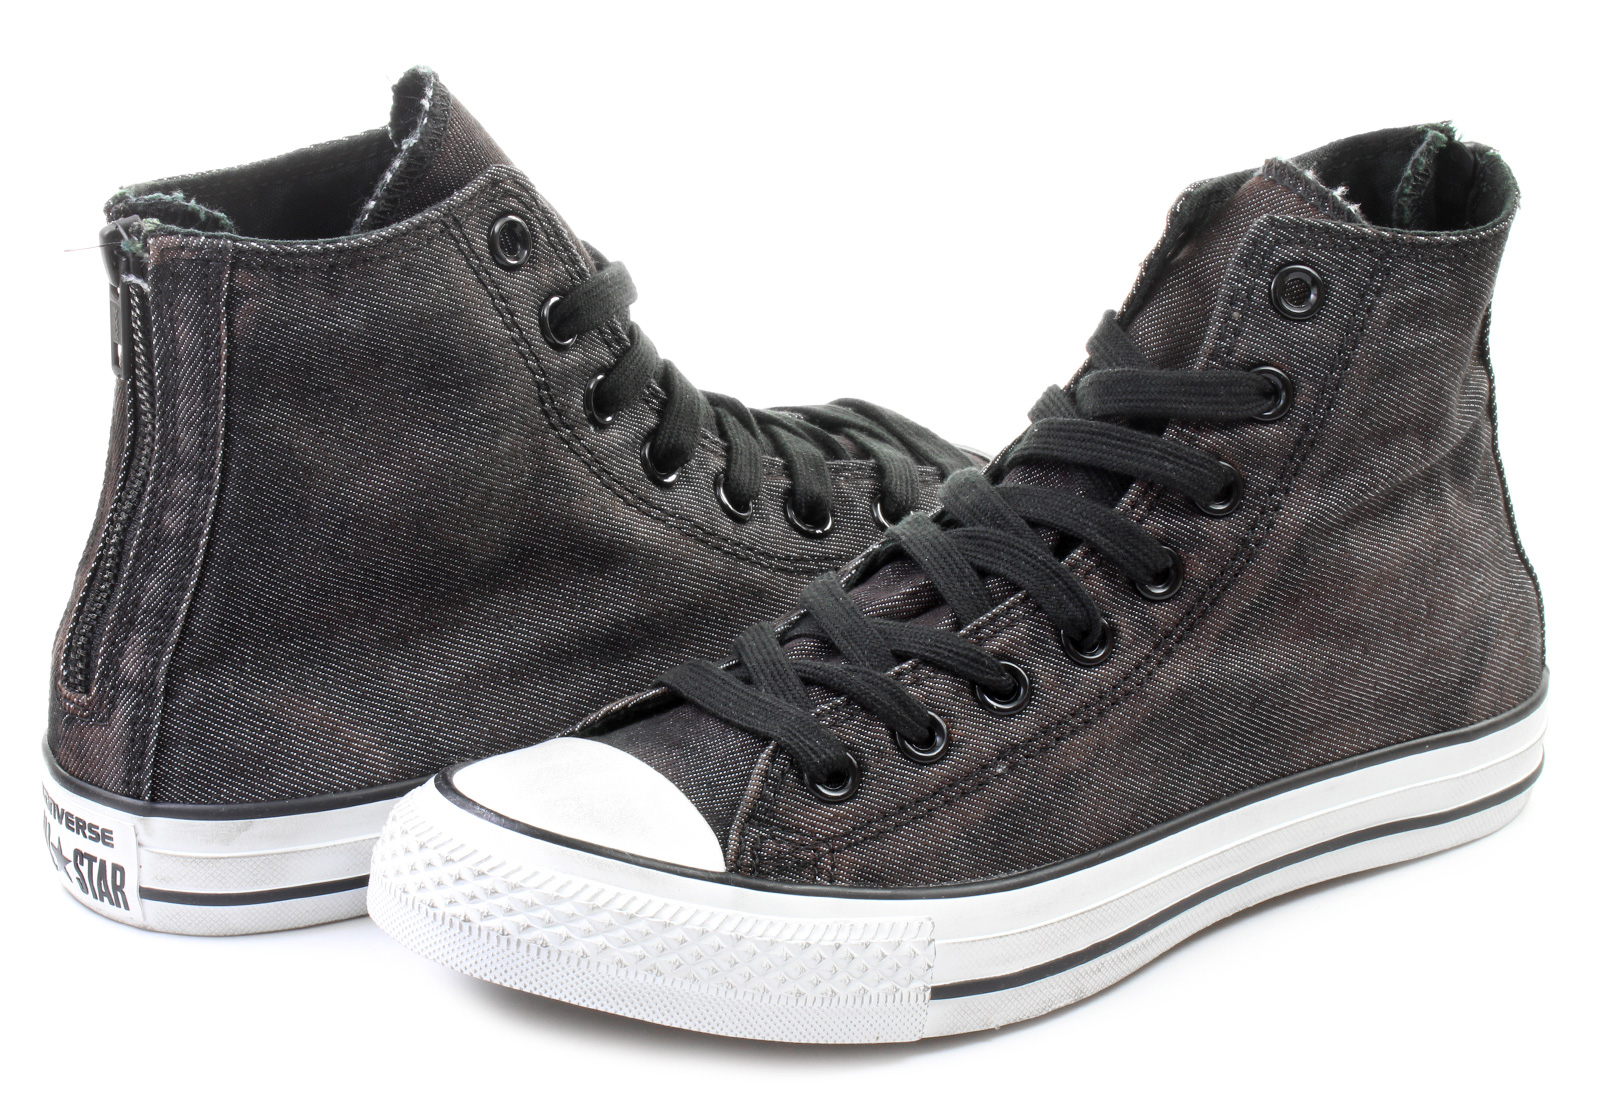 f758783eb0b ... clearance converse sneakers chuck taylor all star back zip hi 2ea3b  bfdf3